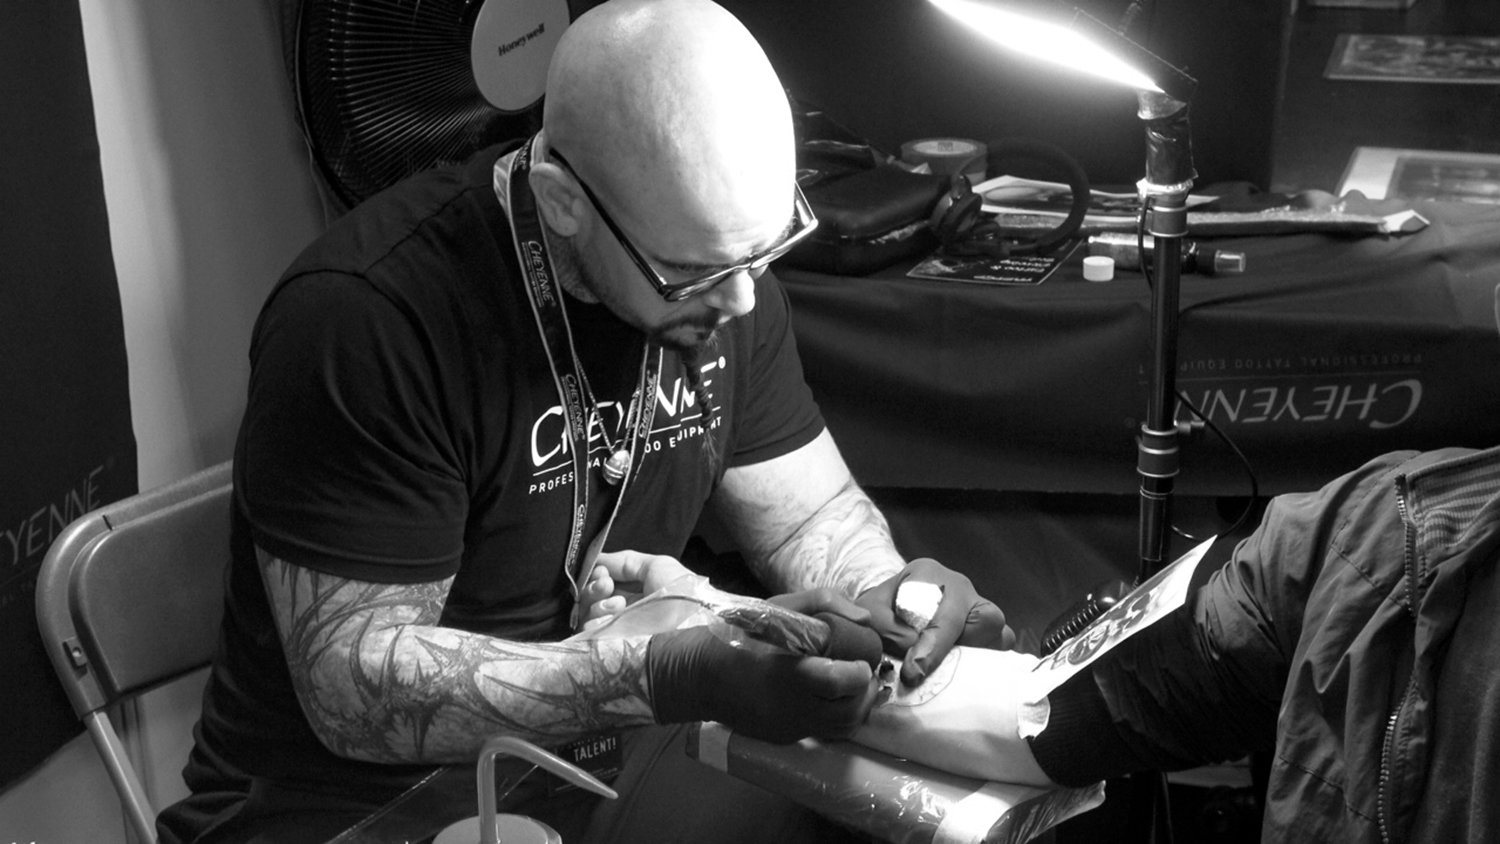 Vincent casilga tattooing at convention